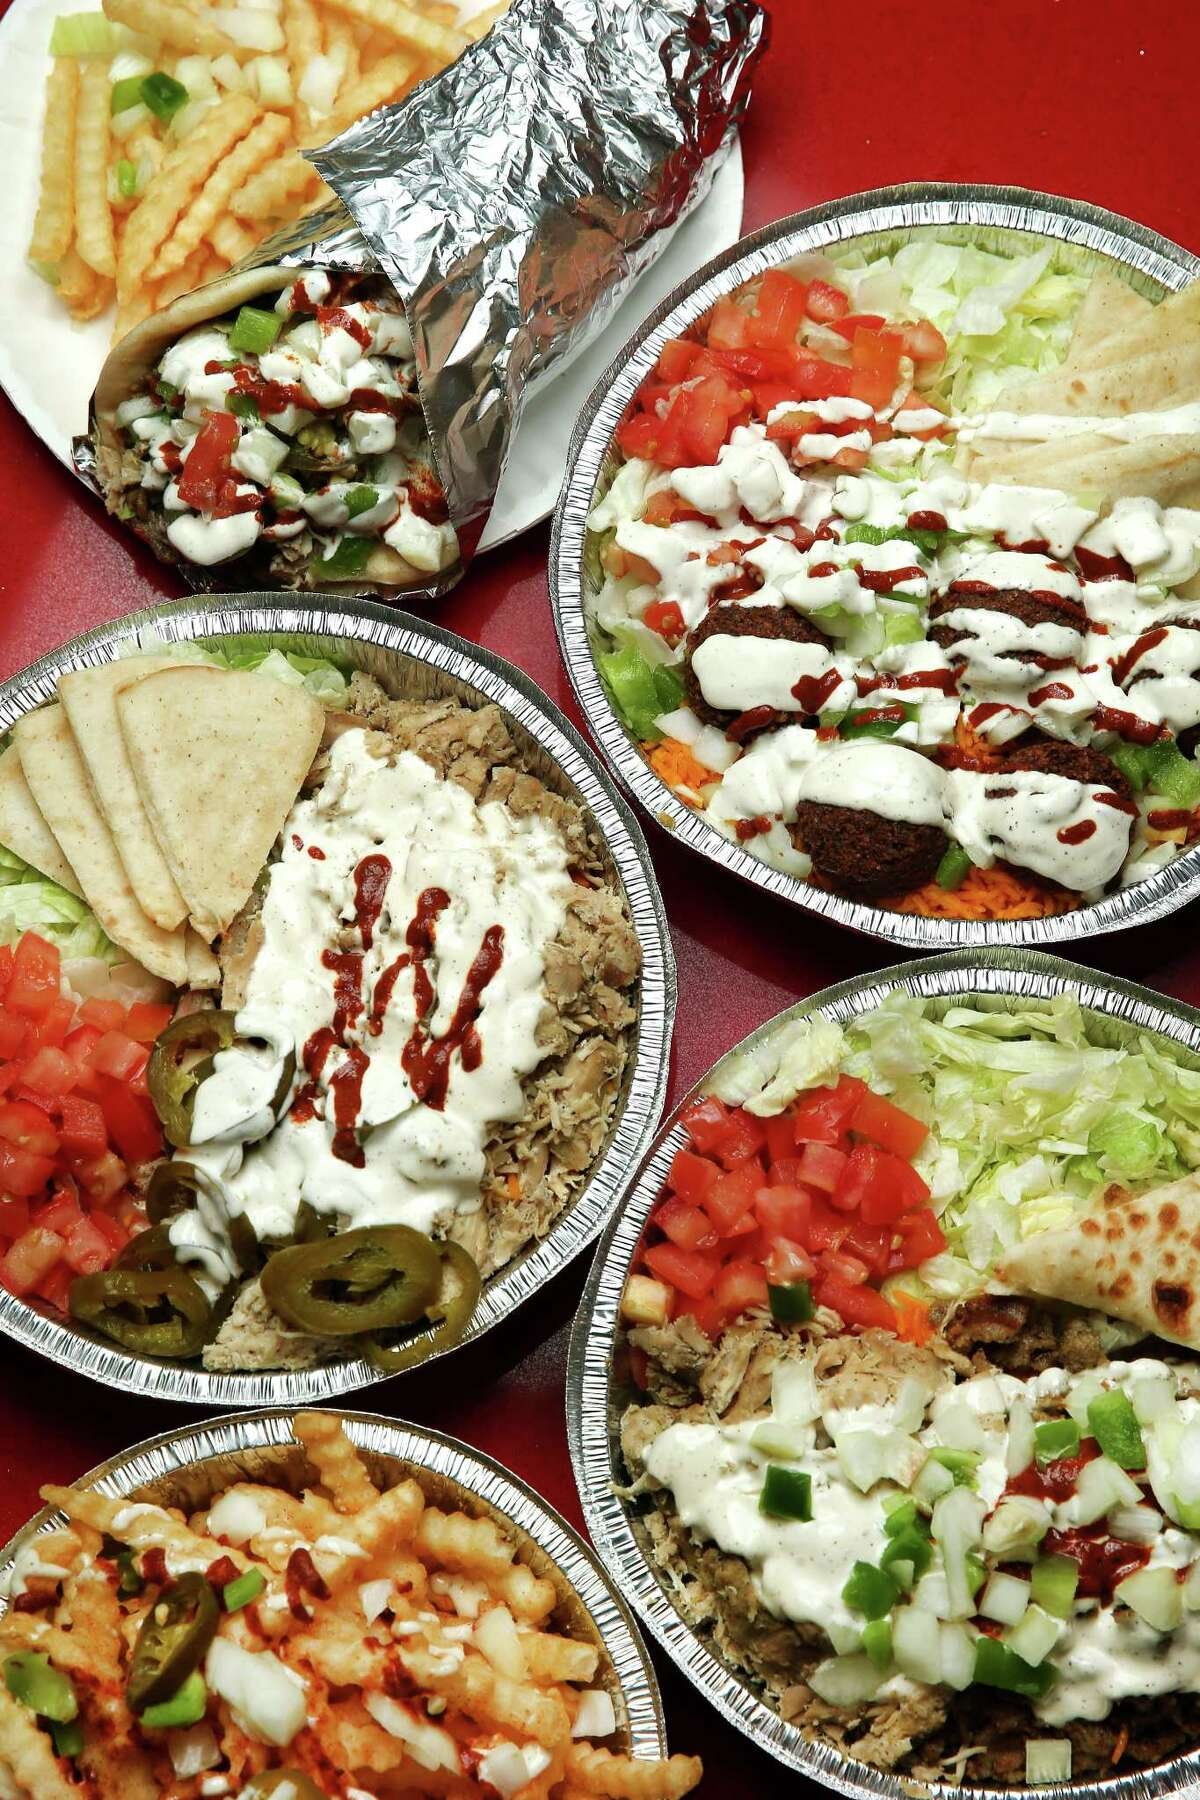 The chicken sandwich with fries; gyro and falafel combo platter; chicken platter with jalapenos; combo platter; and a side of fries at The Halal Guys.